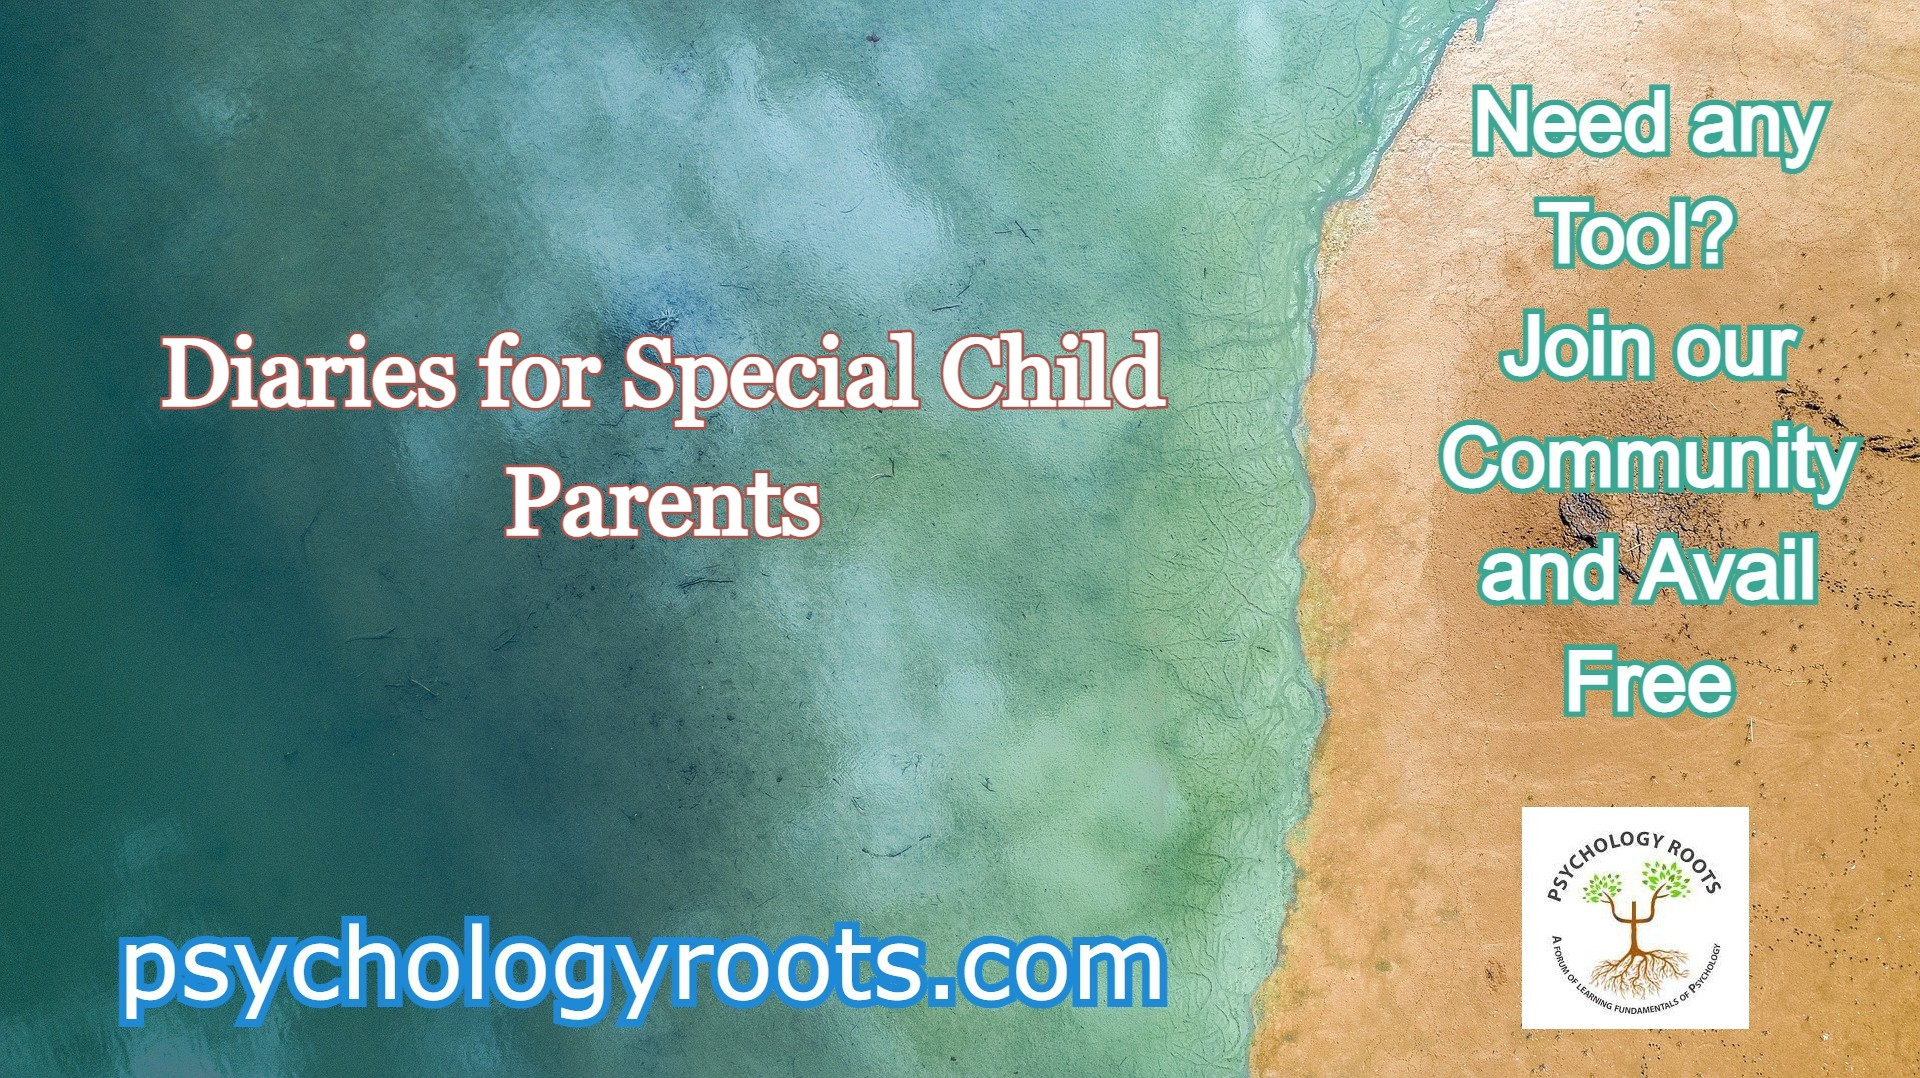 Diaries for Special Child Parents